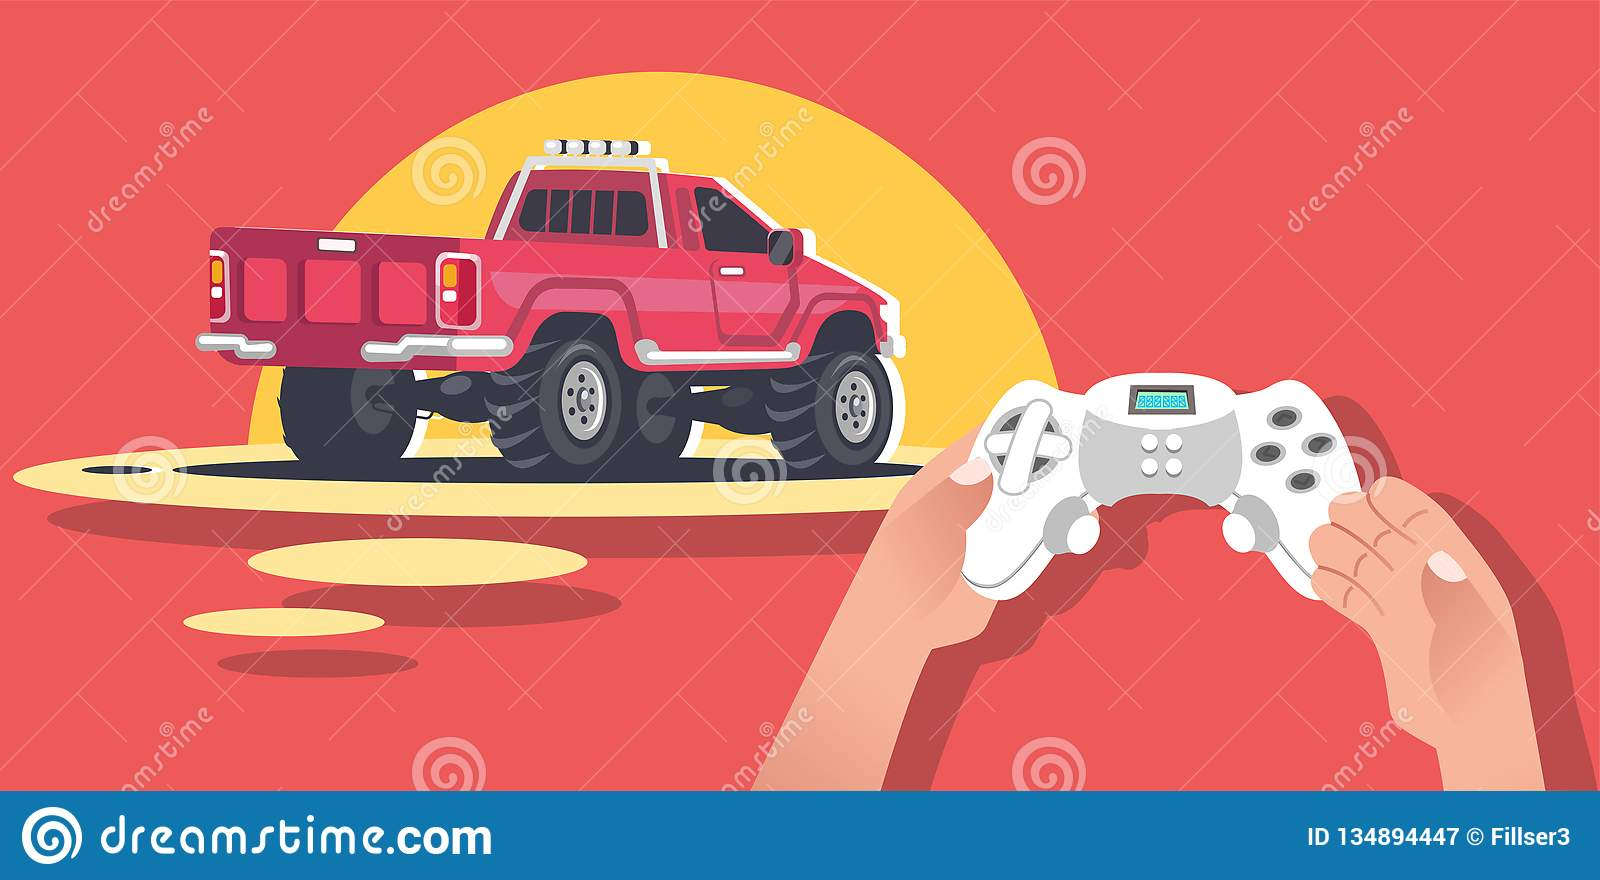 Hands Holding Video game console.